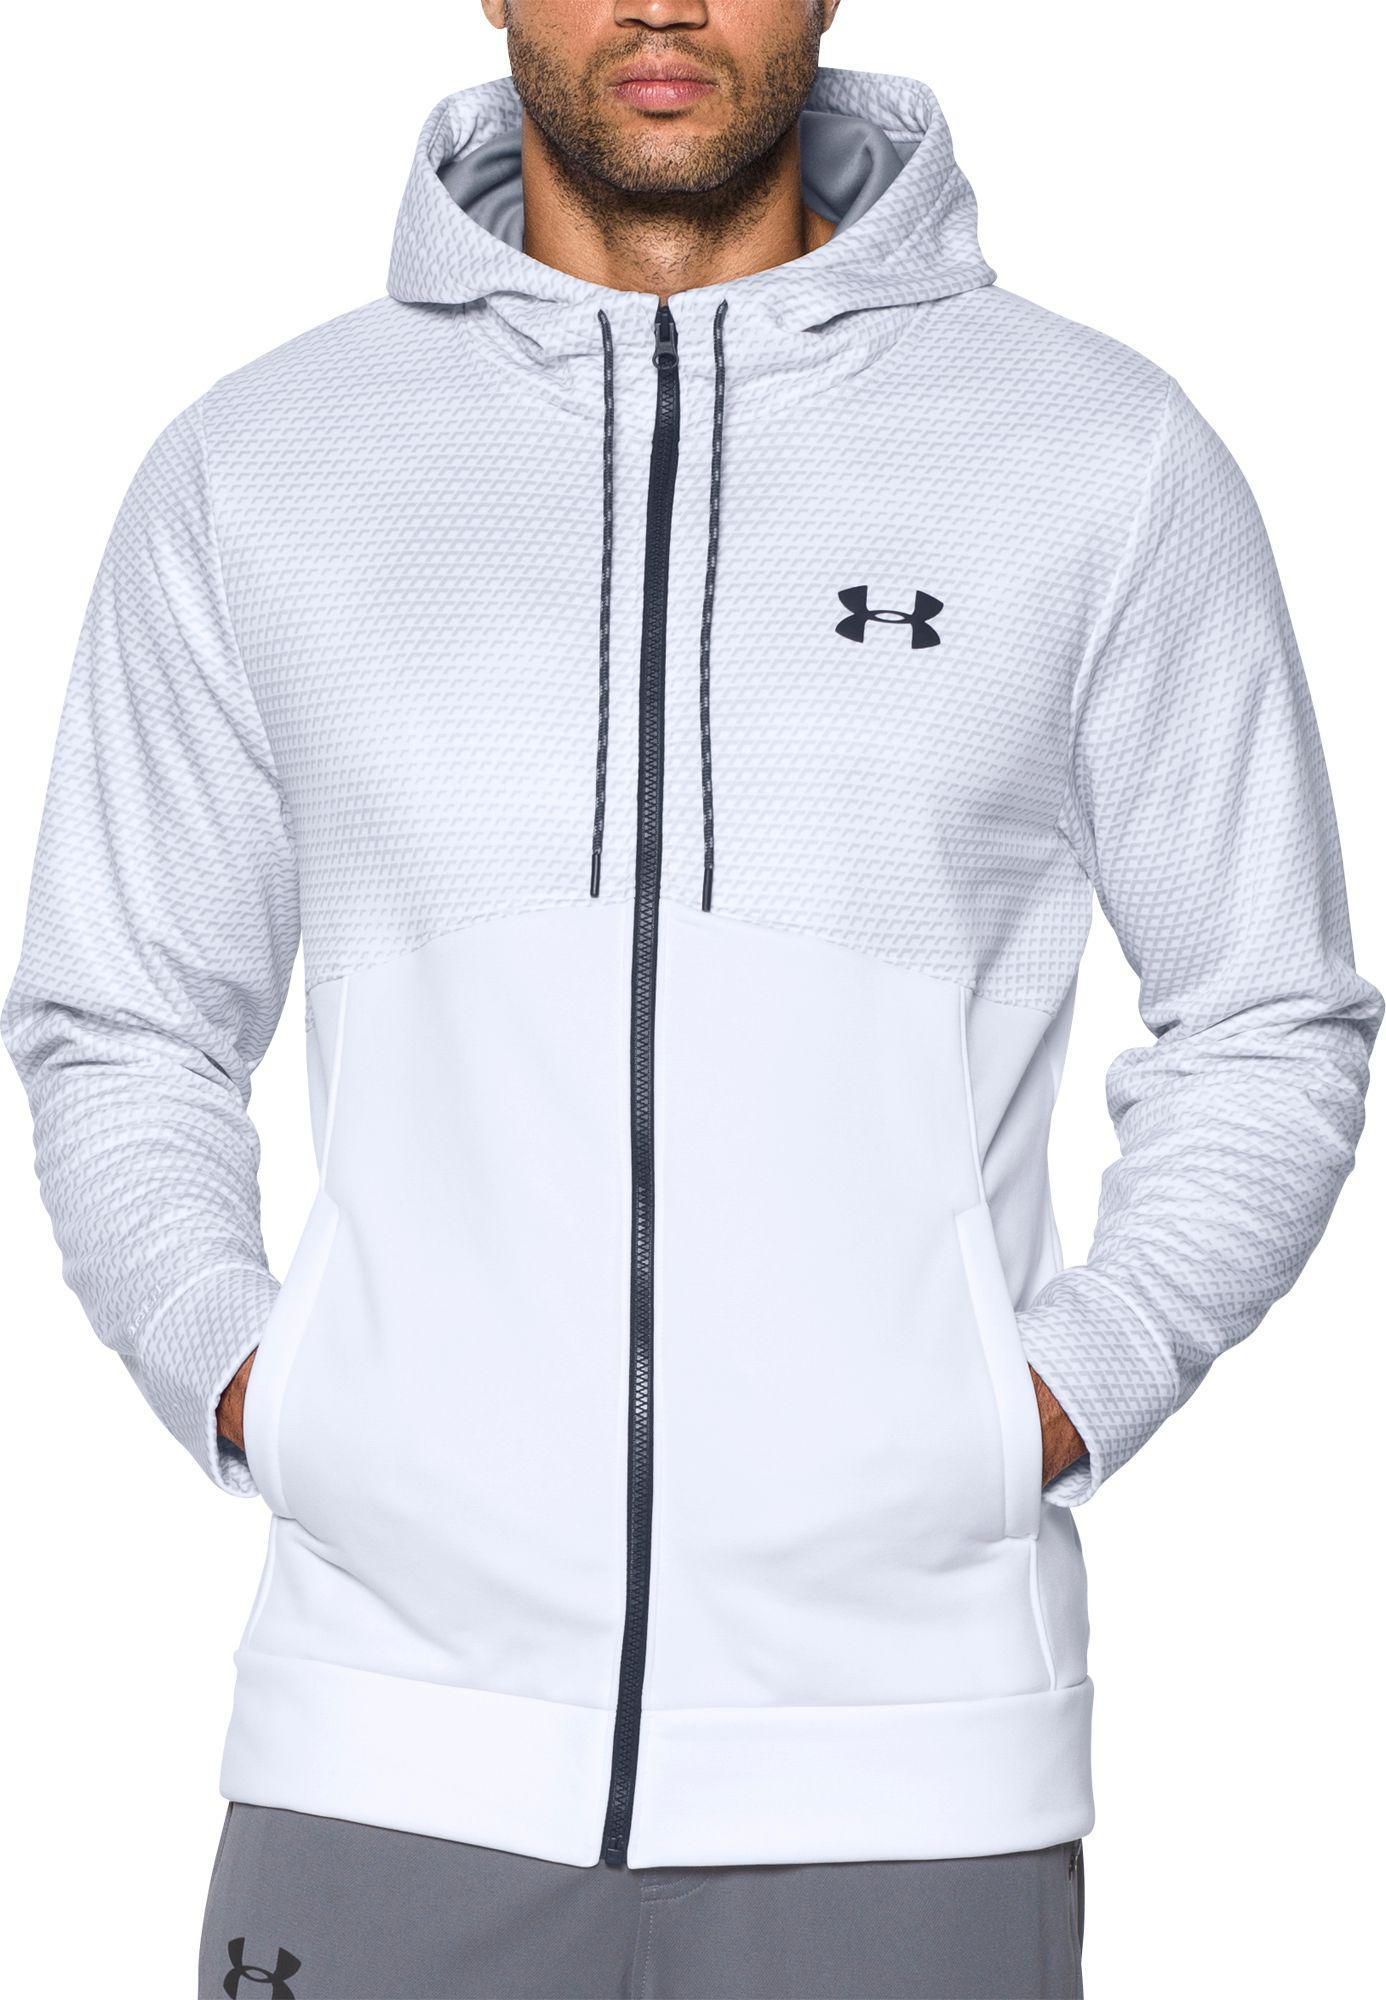 5f47365bca97 Lyst - Under Armour Storm Armour Fleece Full Zip Hoodie in White for Men